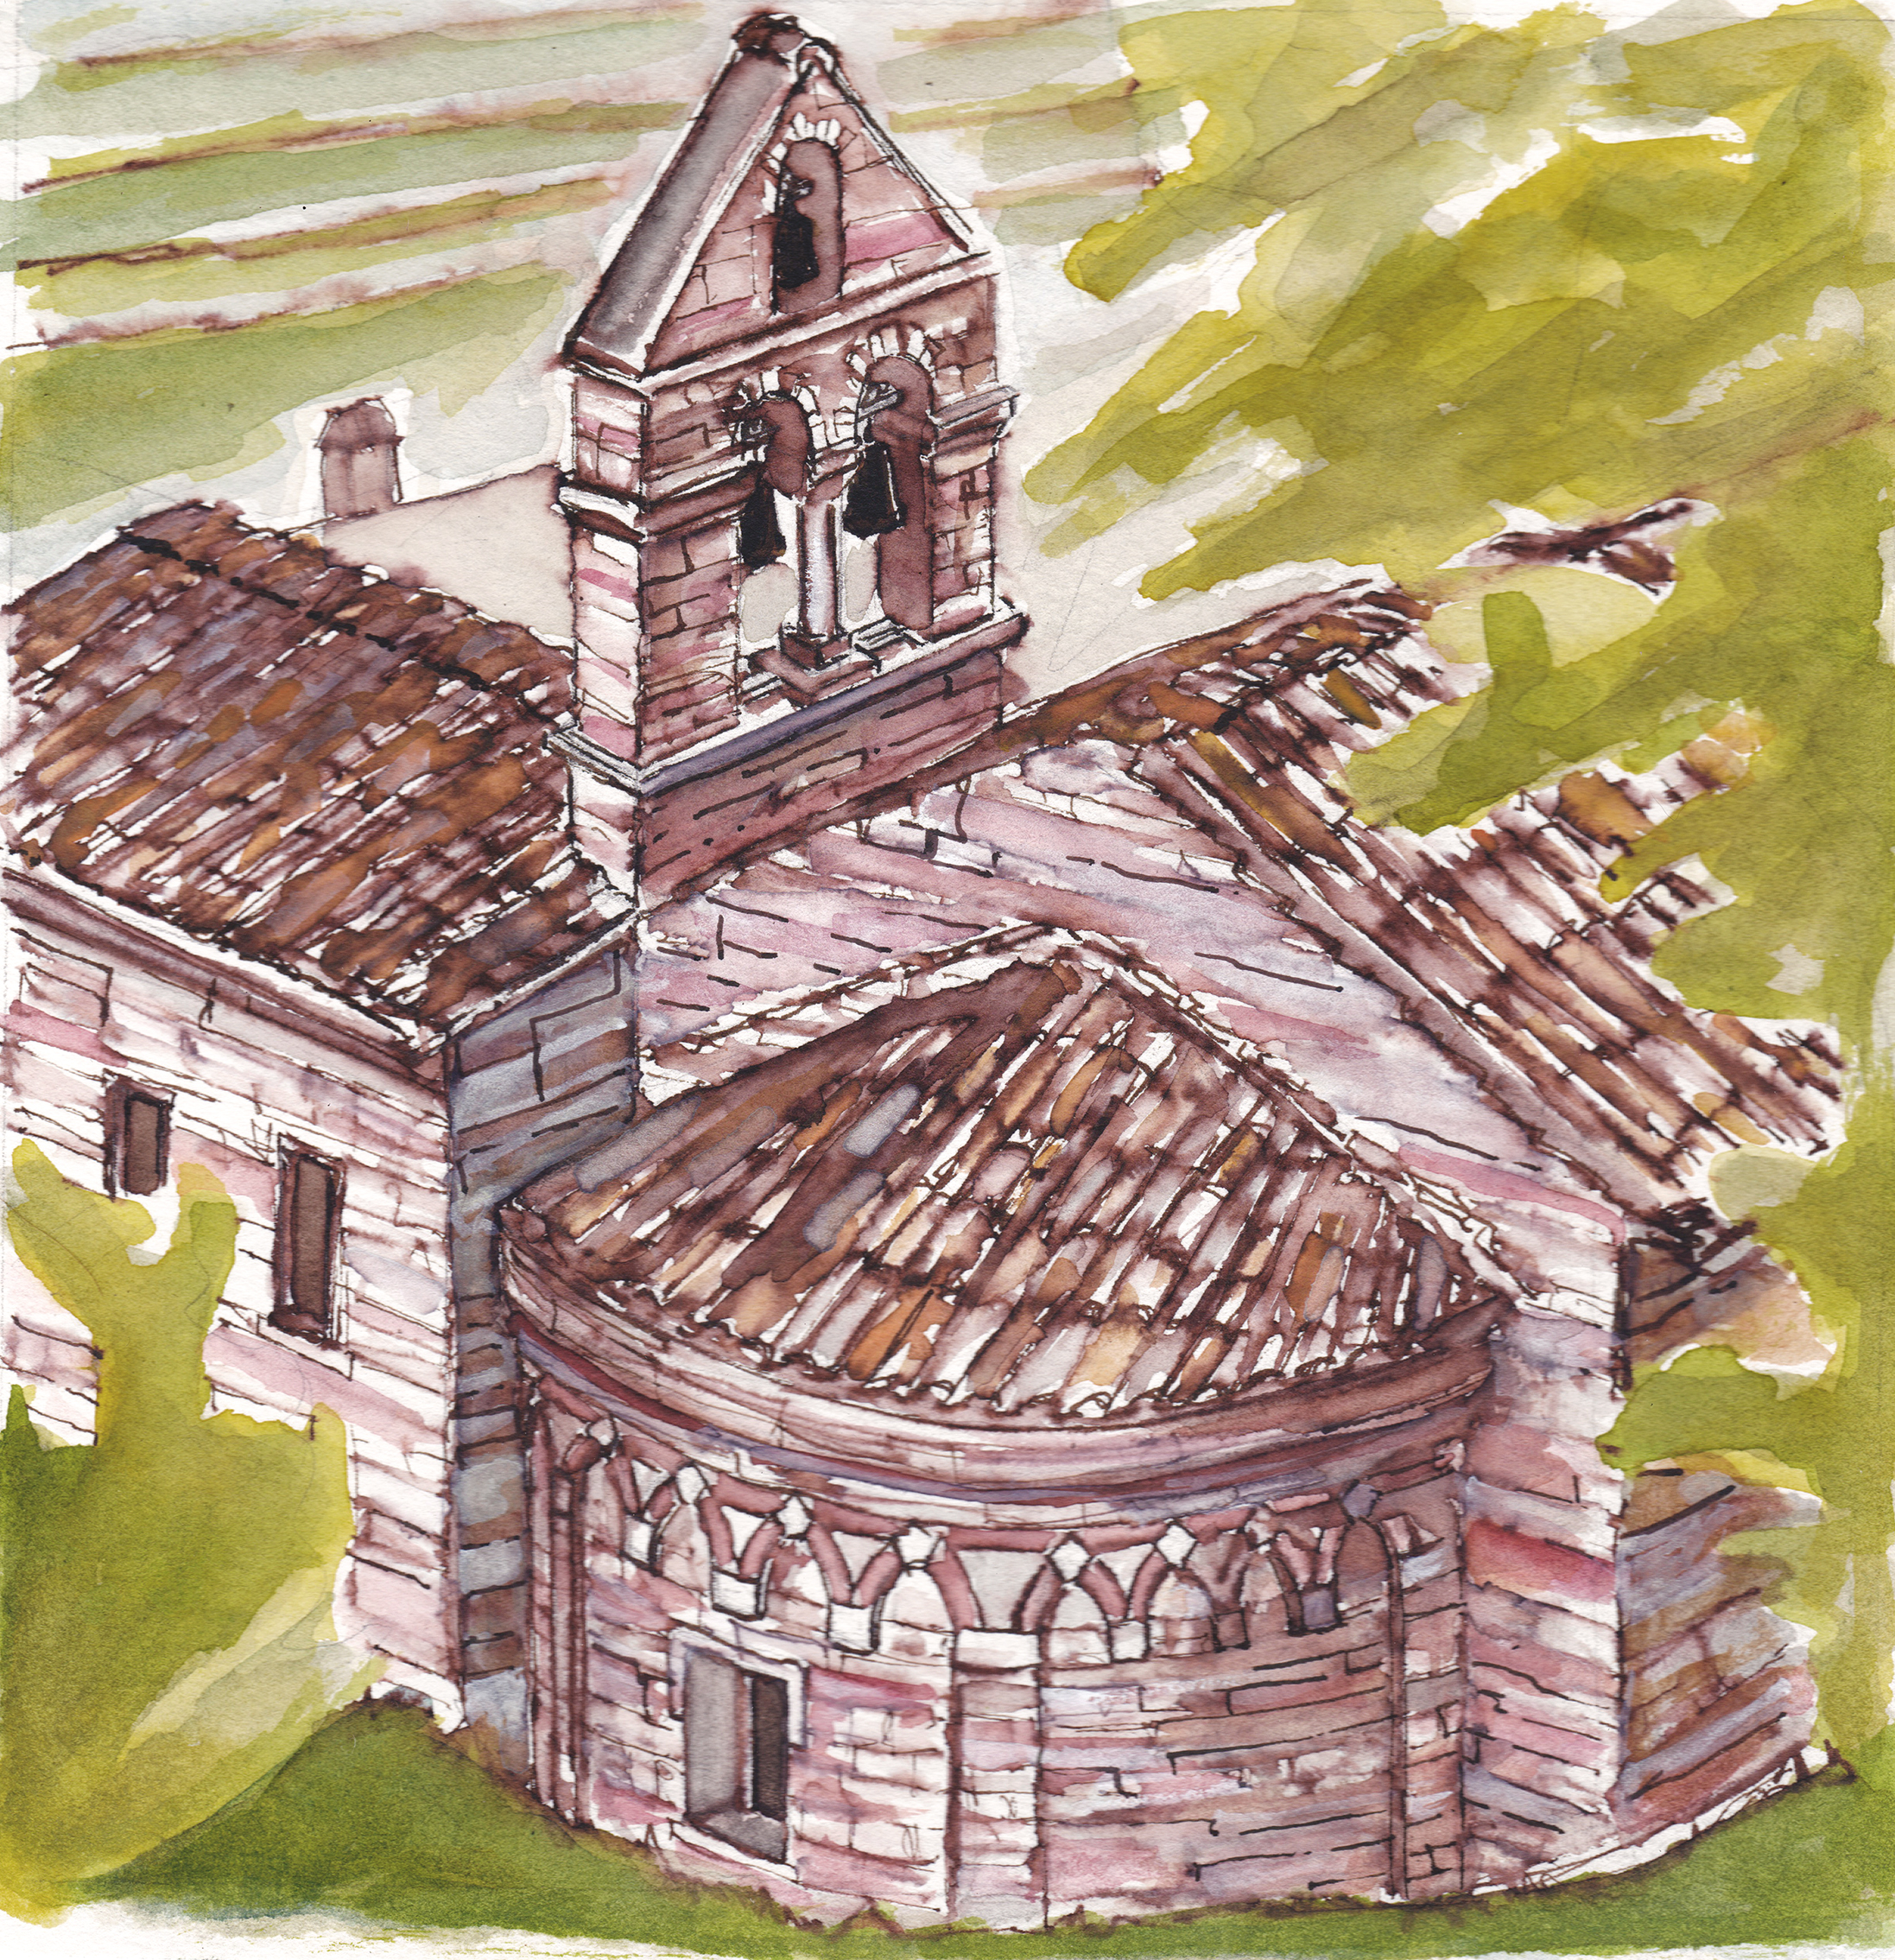 Santo Stefano Exterior Apse, Assisi, Italy, Watercolor on paper, 9 x 9 inches, 2019